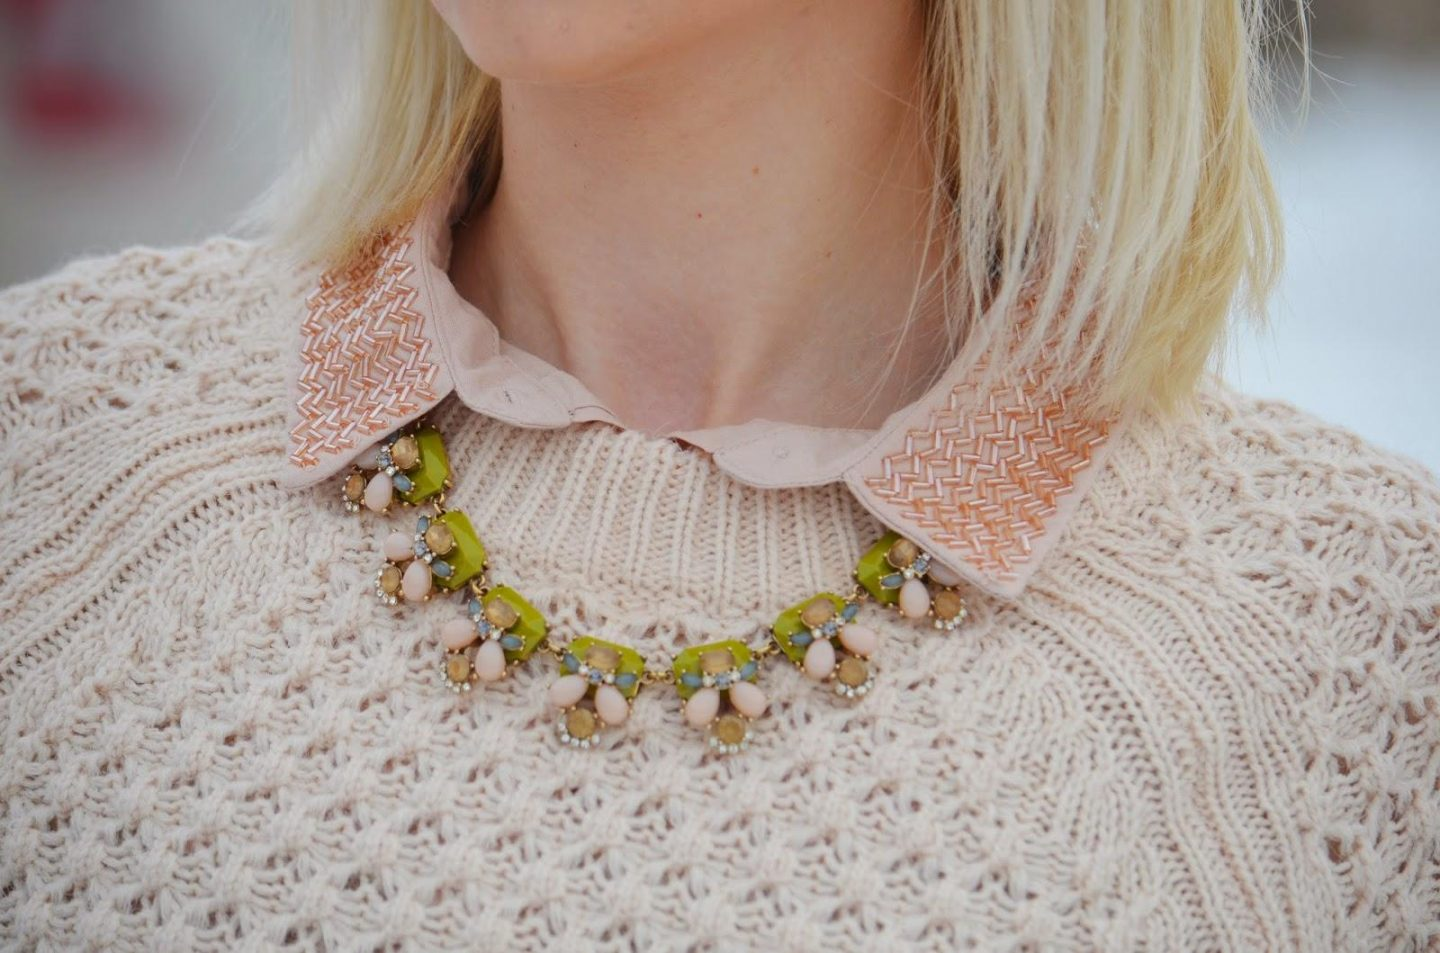 Style, OOTD, Pastel, winter style, J. Crew, J. Crew factory, H&M, Vince Camuto, pastel style, casual style, oversized sweater, oversized sweater style, beaded shirt, beaded collar shirt, embellished collar,